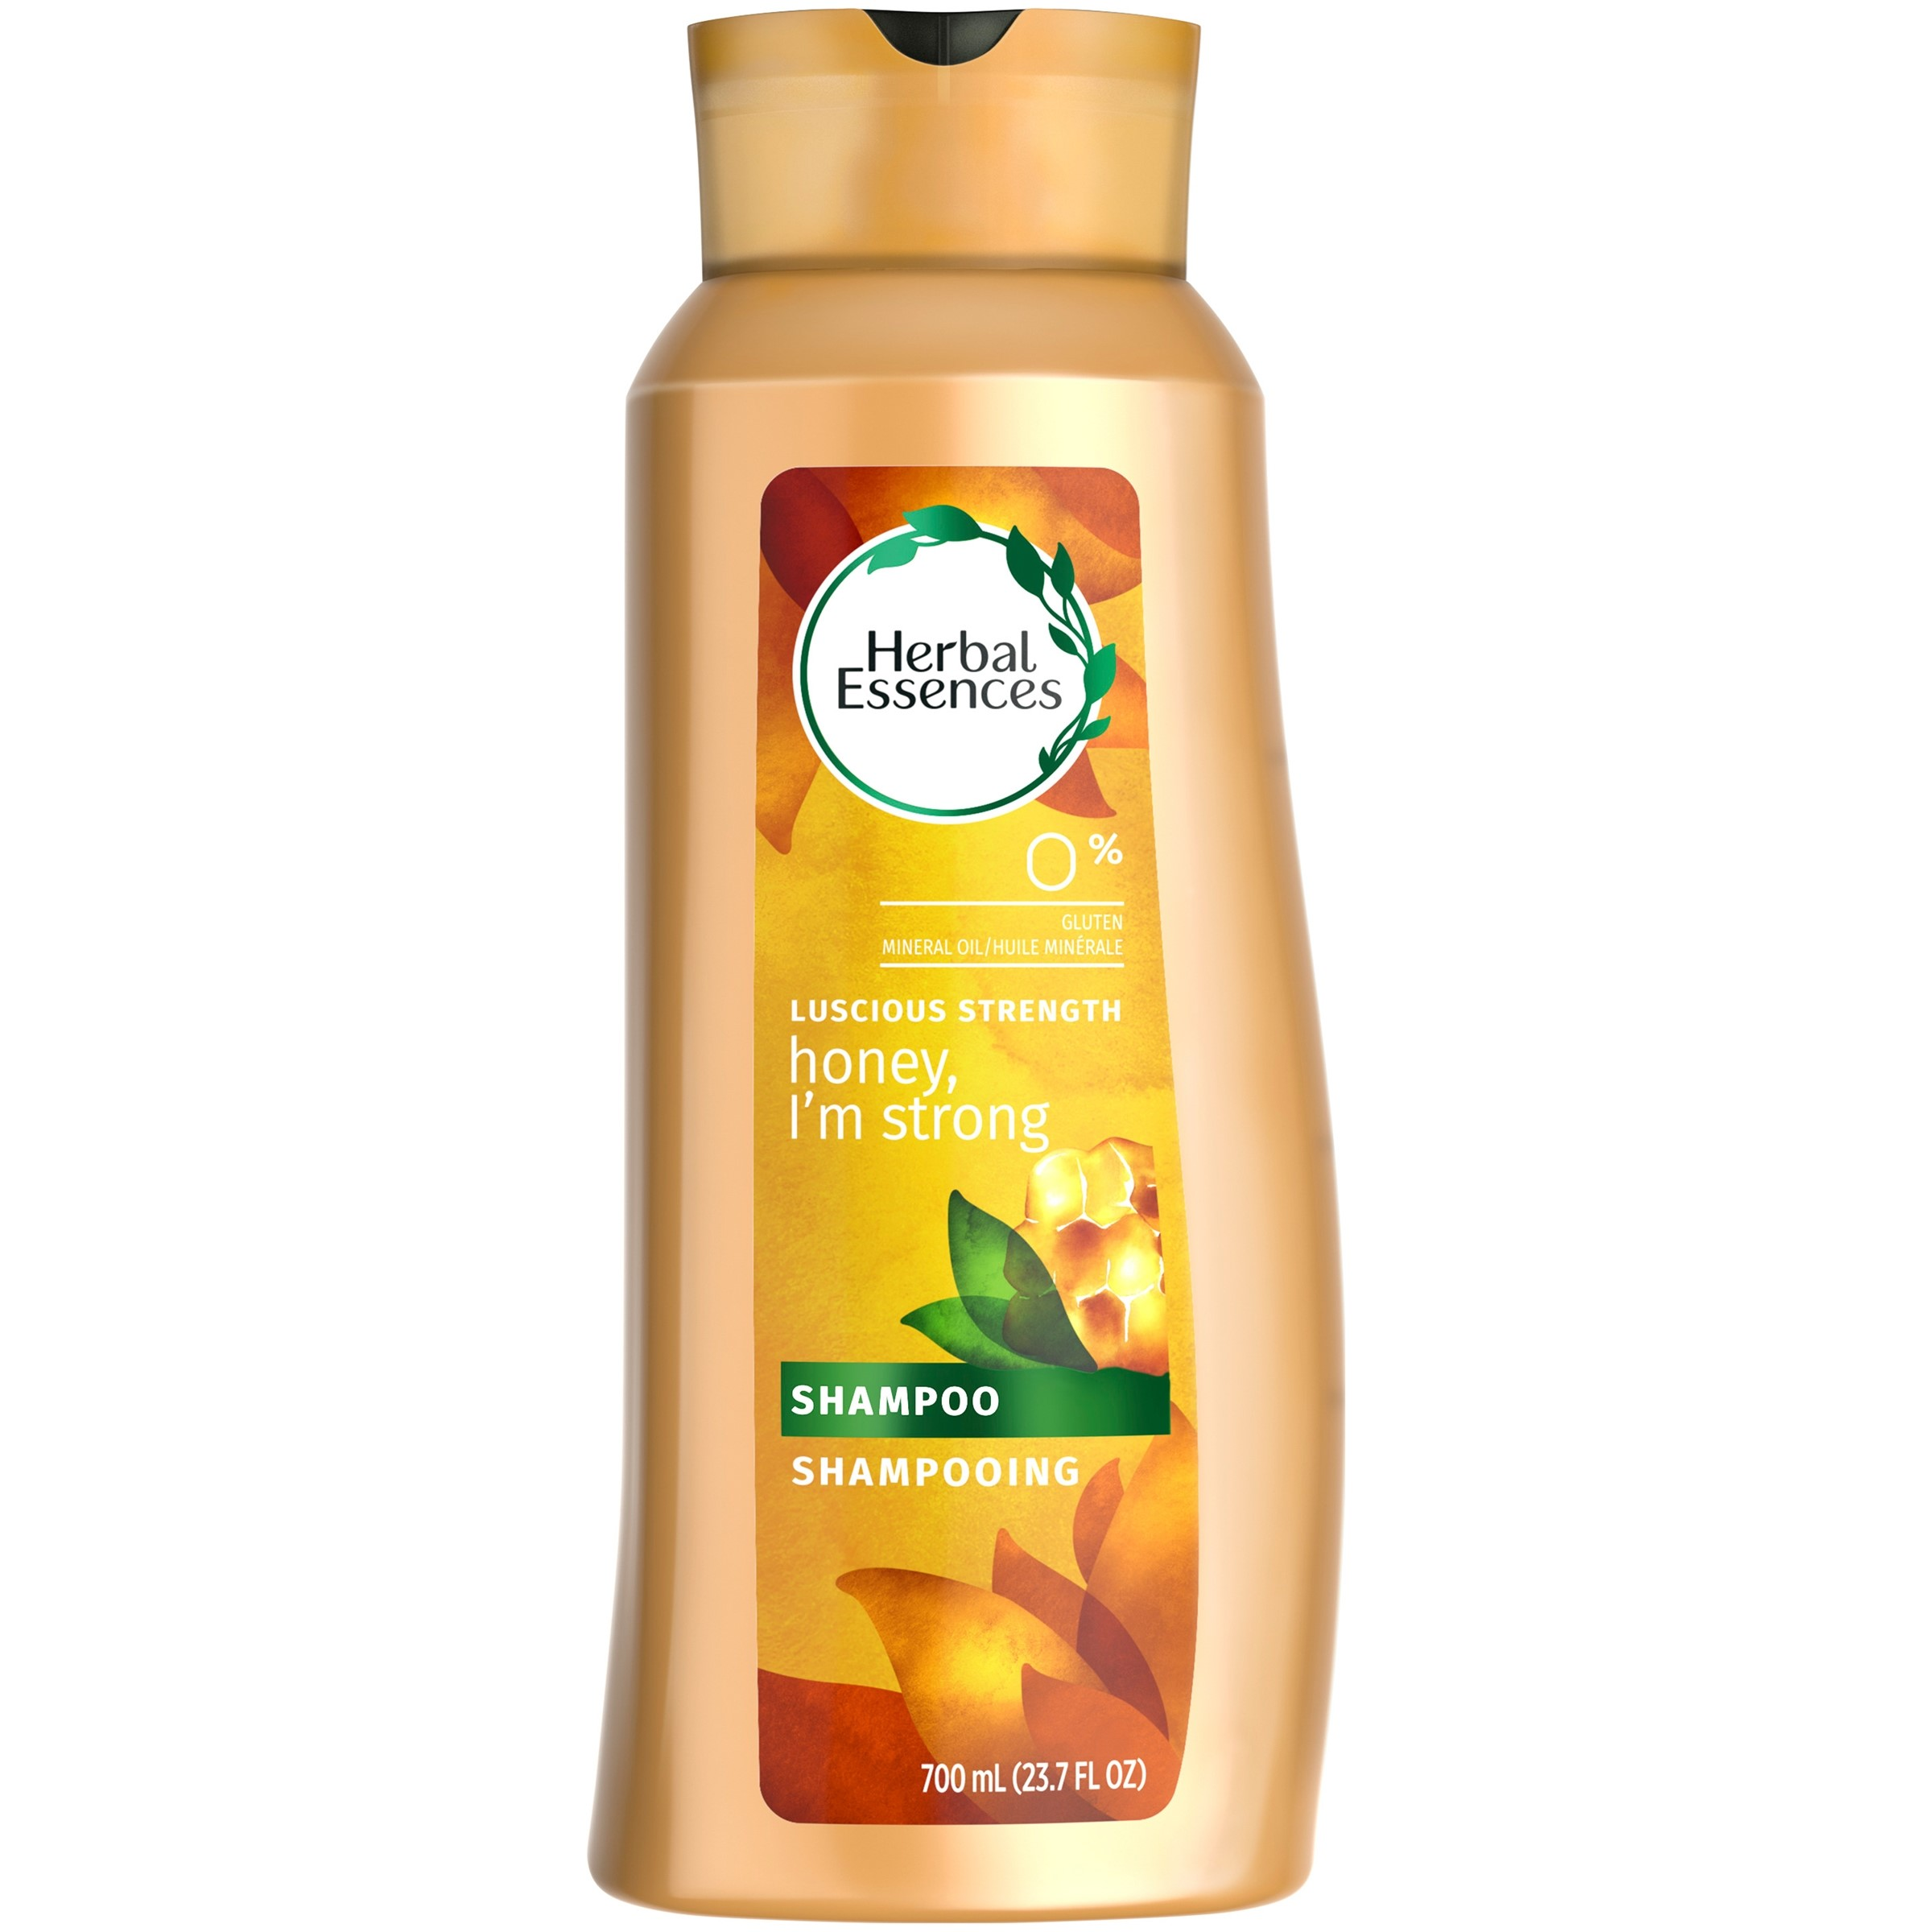 Herbal Essences Honey I'm Strong Strengthening Shampoo with Honey Essences 23.7 fl oz